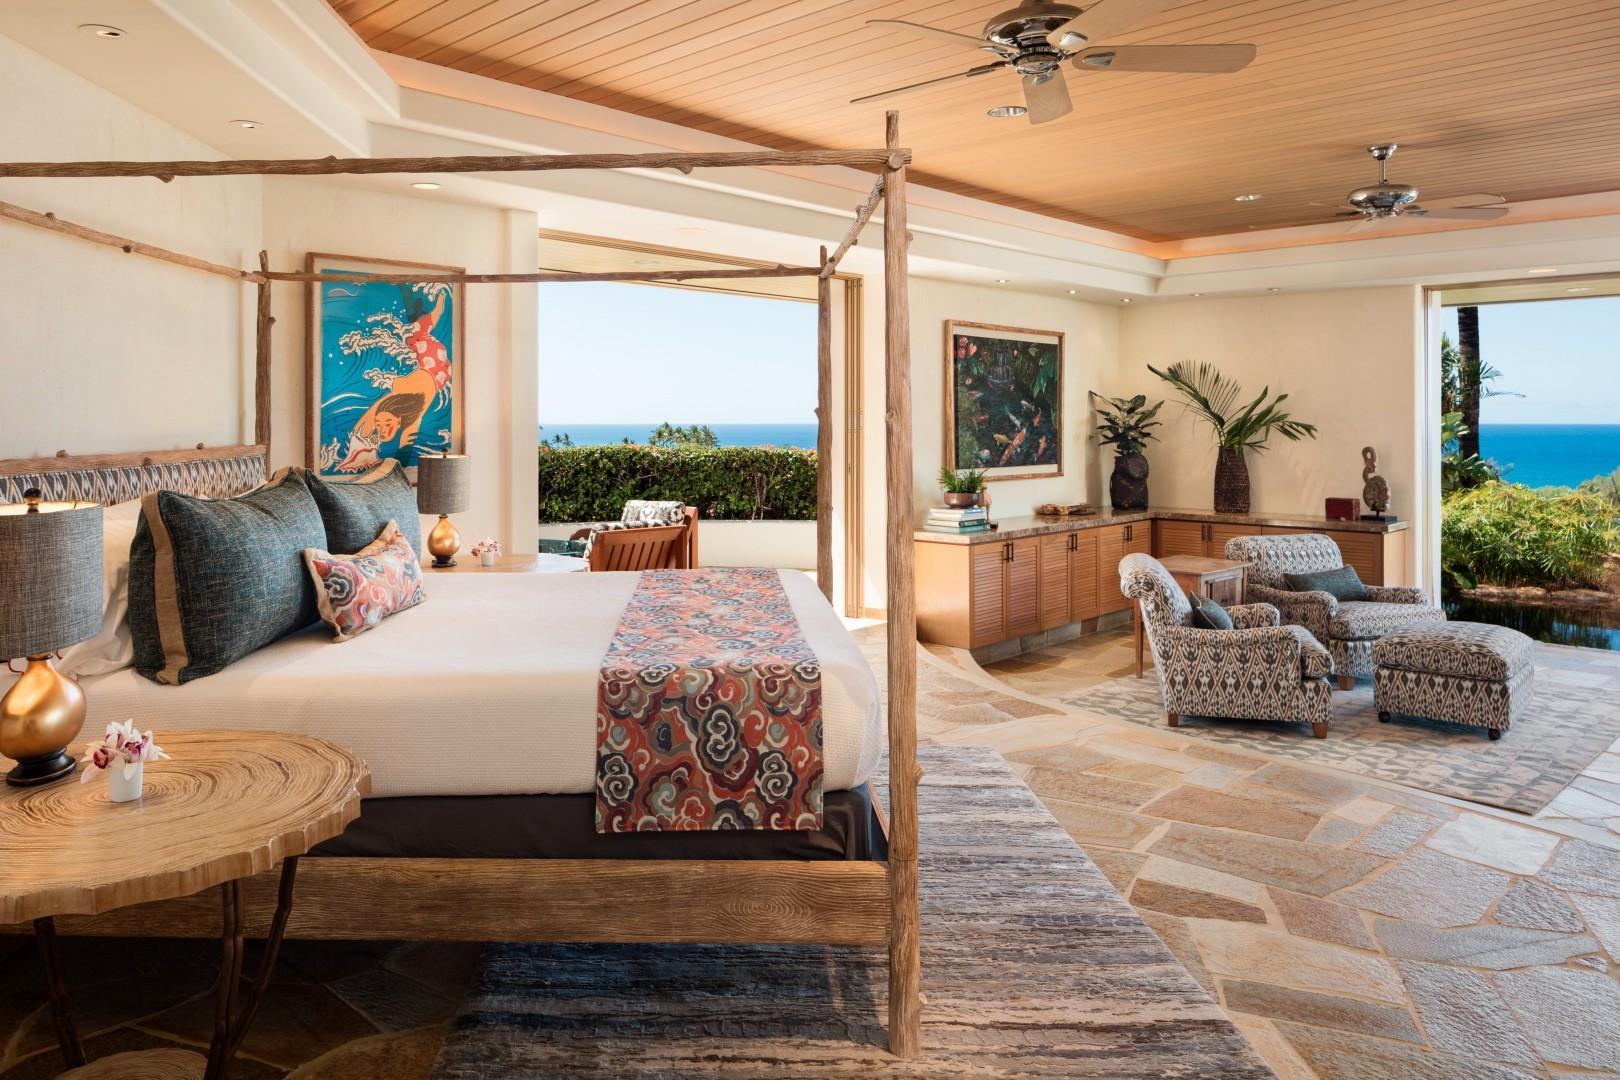 Ocean-view master suite with flat-screen TV, private deck with seating, and sitting area with view over waterfall.